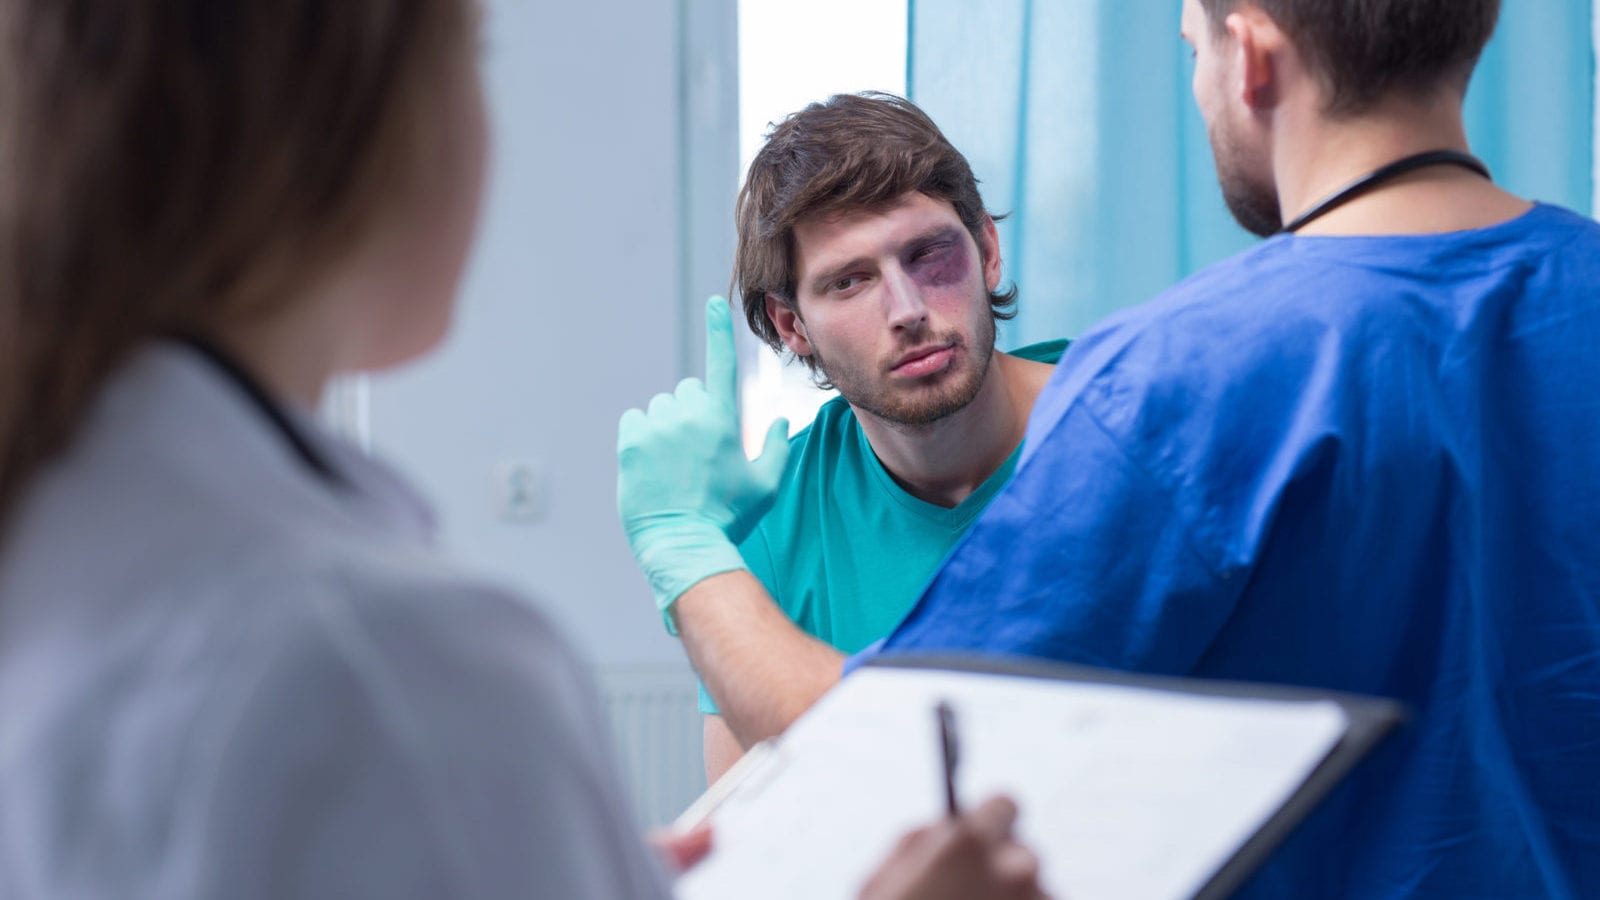 Male Patient Stock Photo